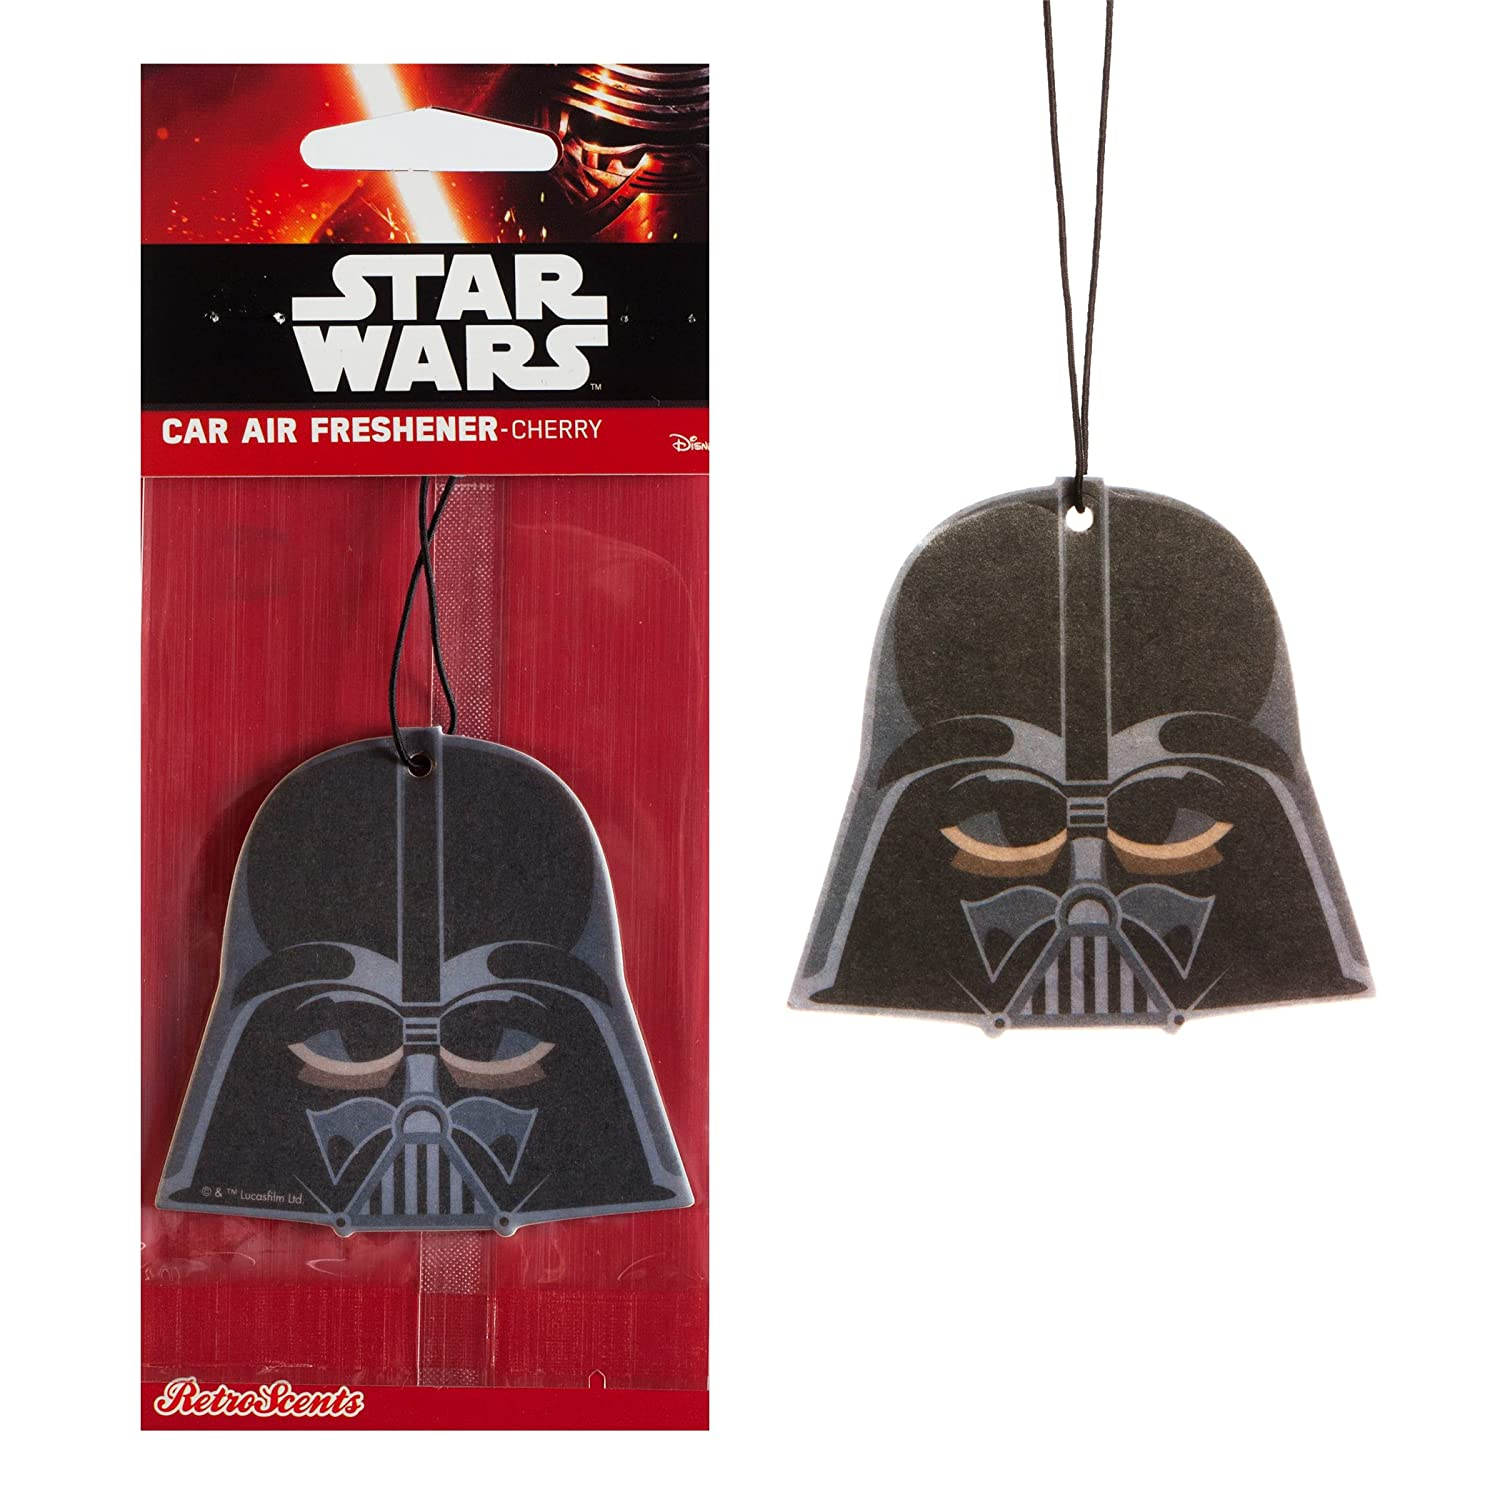 Star Wars Official Disney Car Air Freshener Twin Pack - Storm Trooper + Darth Vader Retro Scents